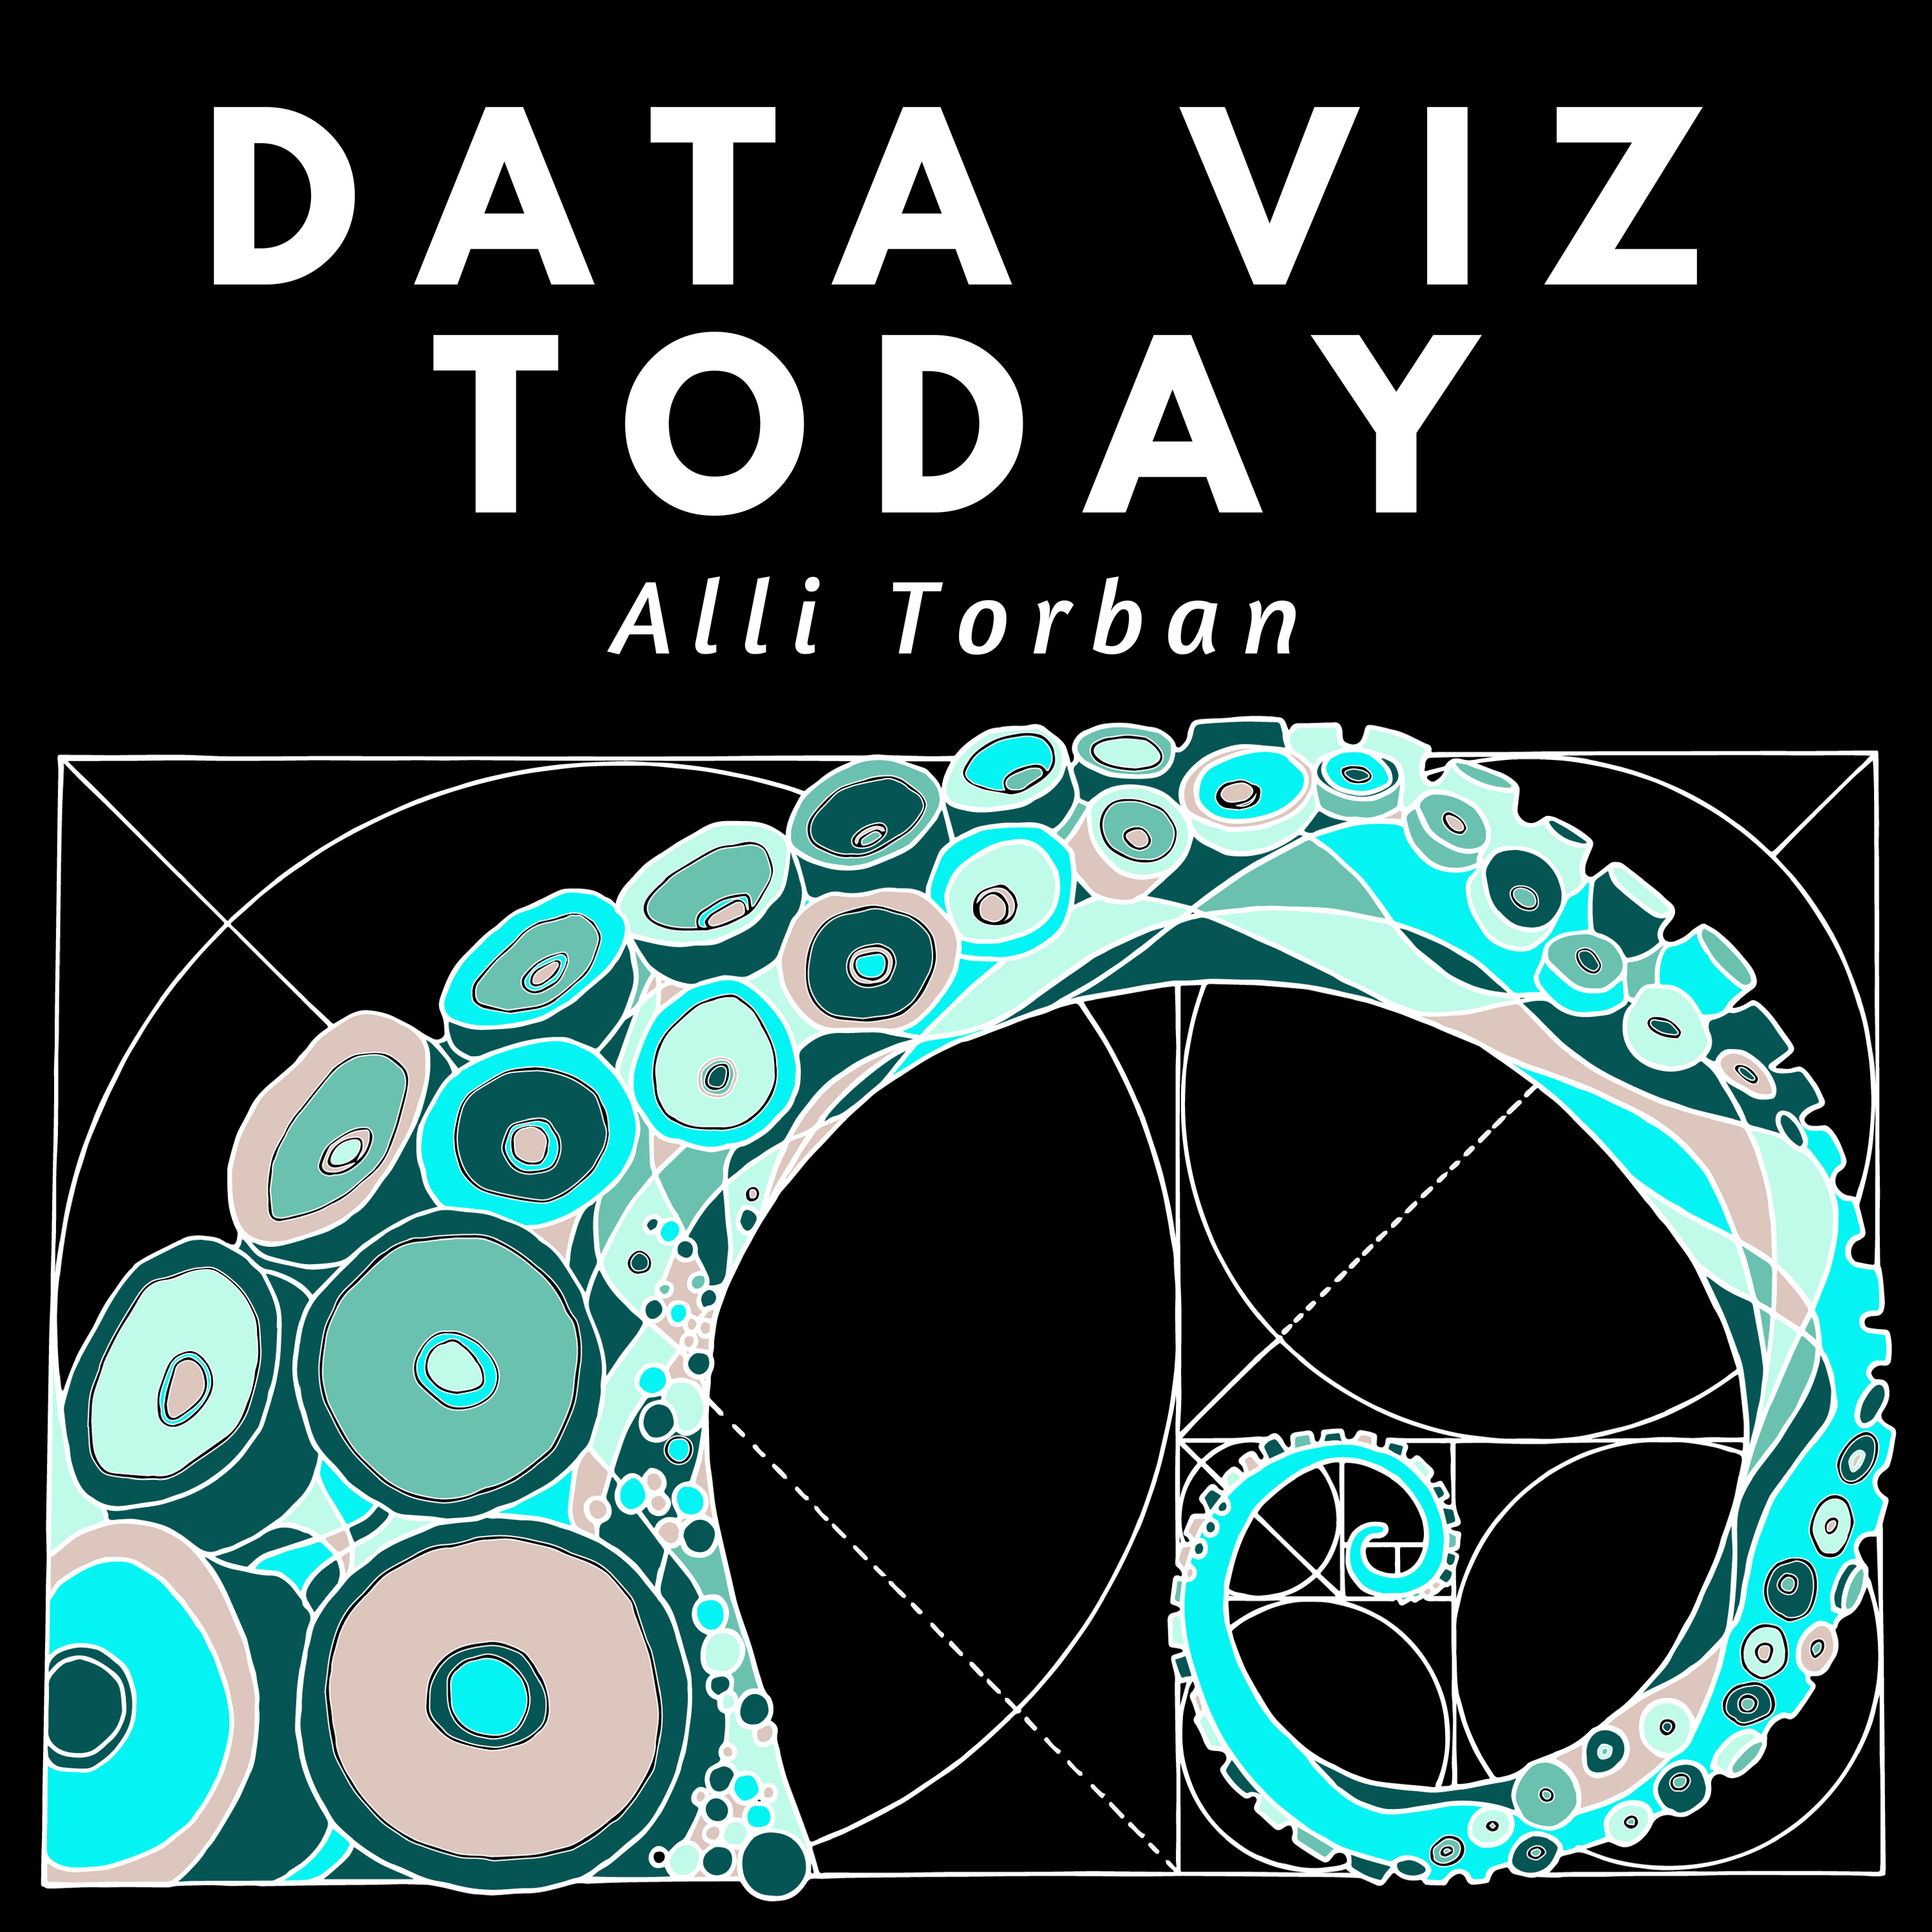 BONUS: 3 Steps to Feel More Confident in Your Data Visualization Process